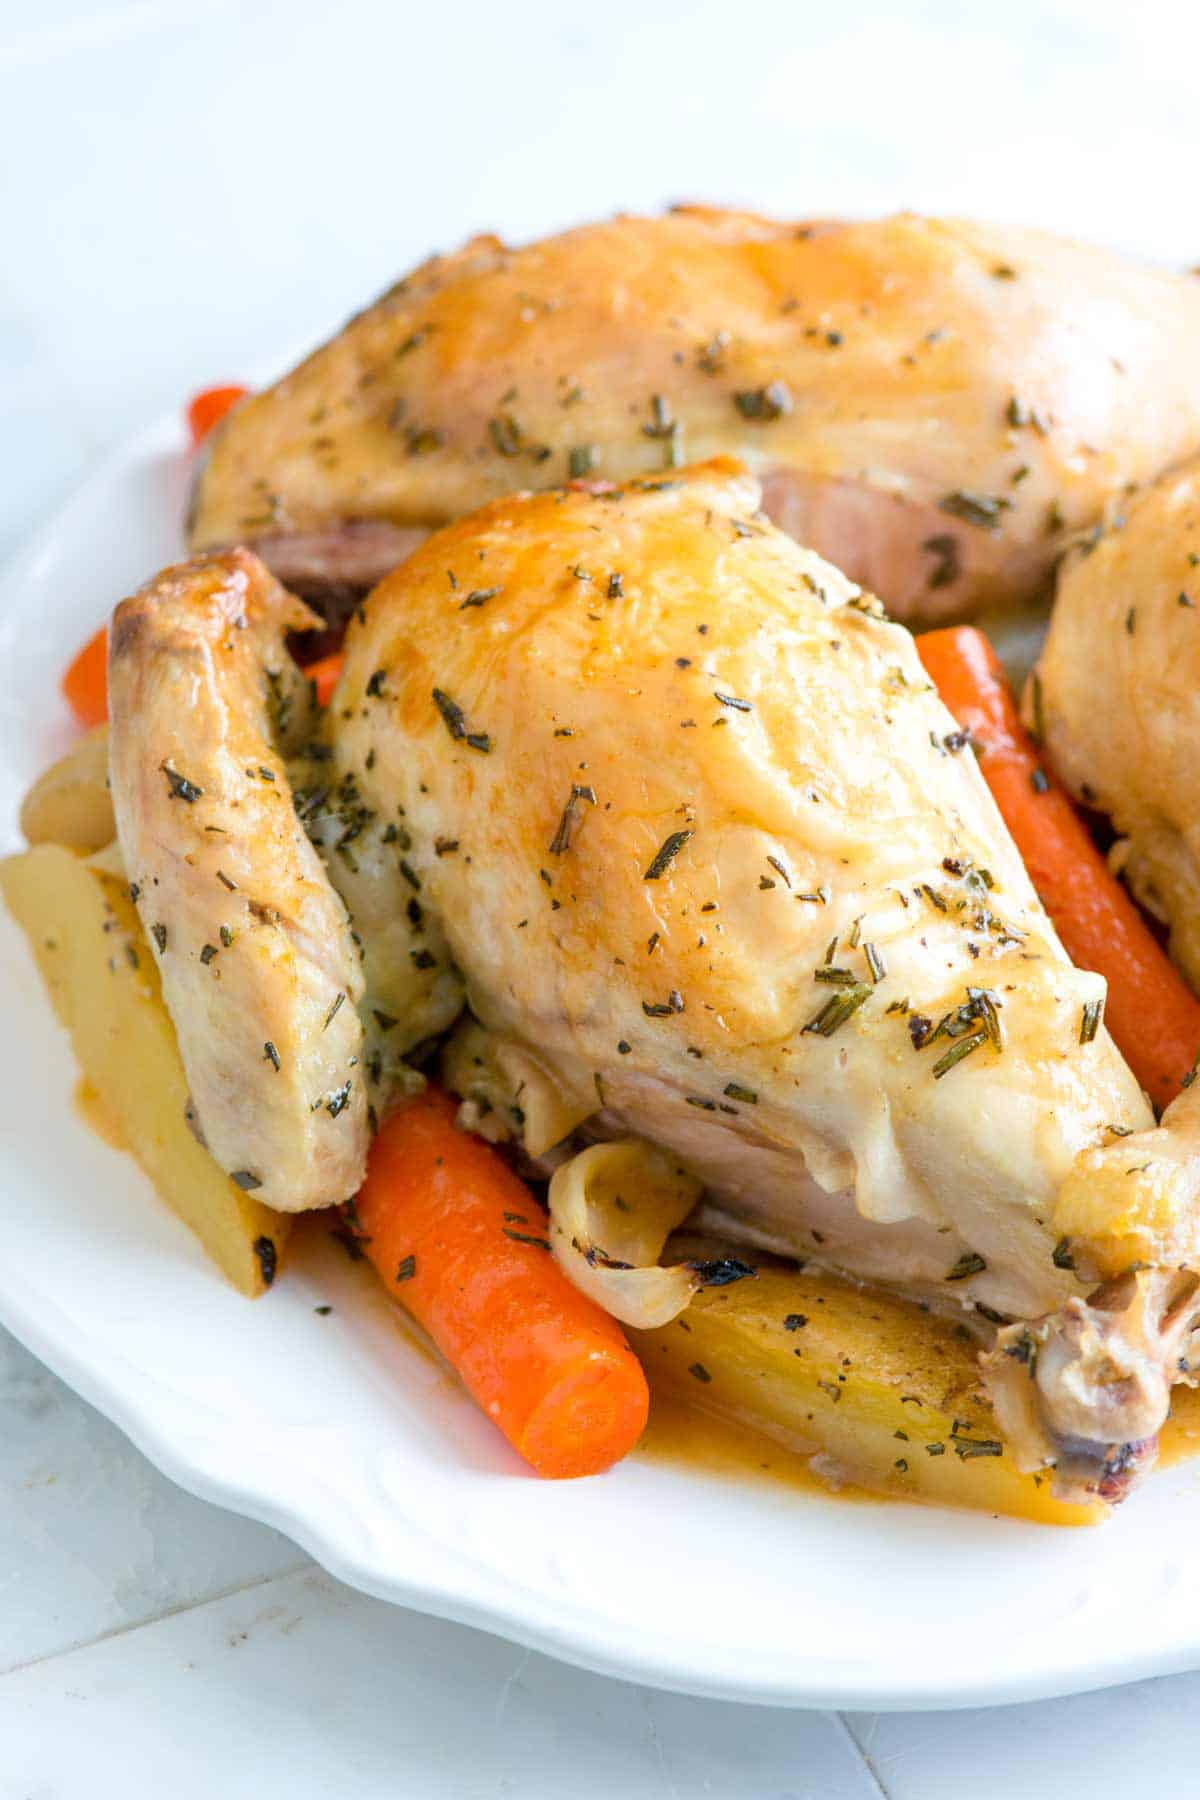 Butterflied Roasted Chicken Recipe